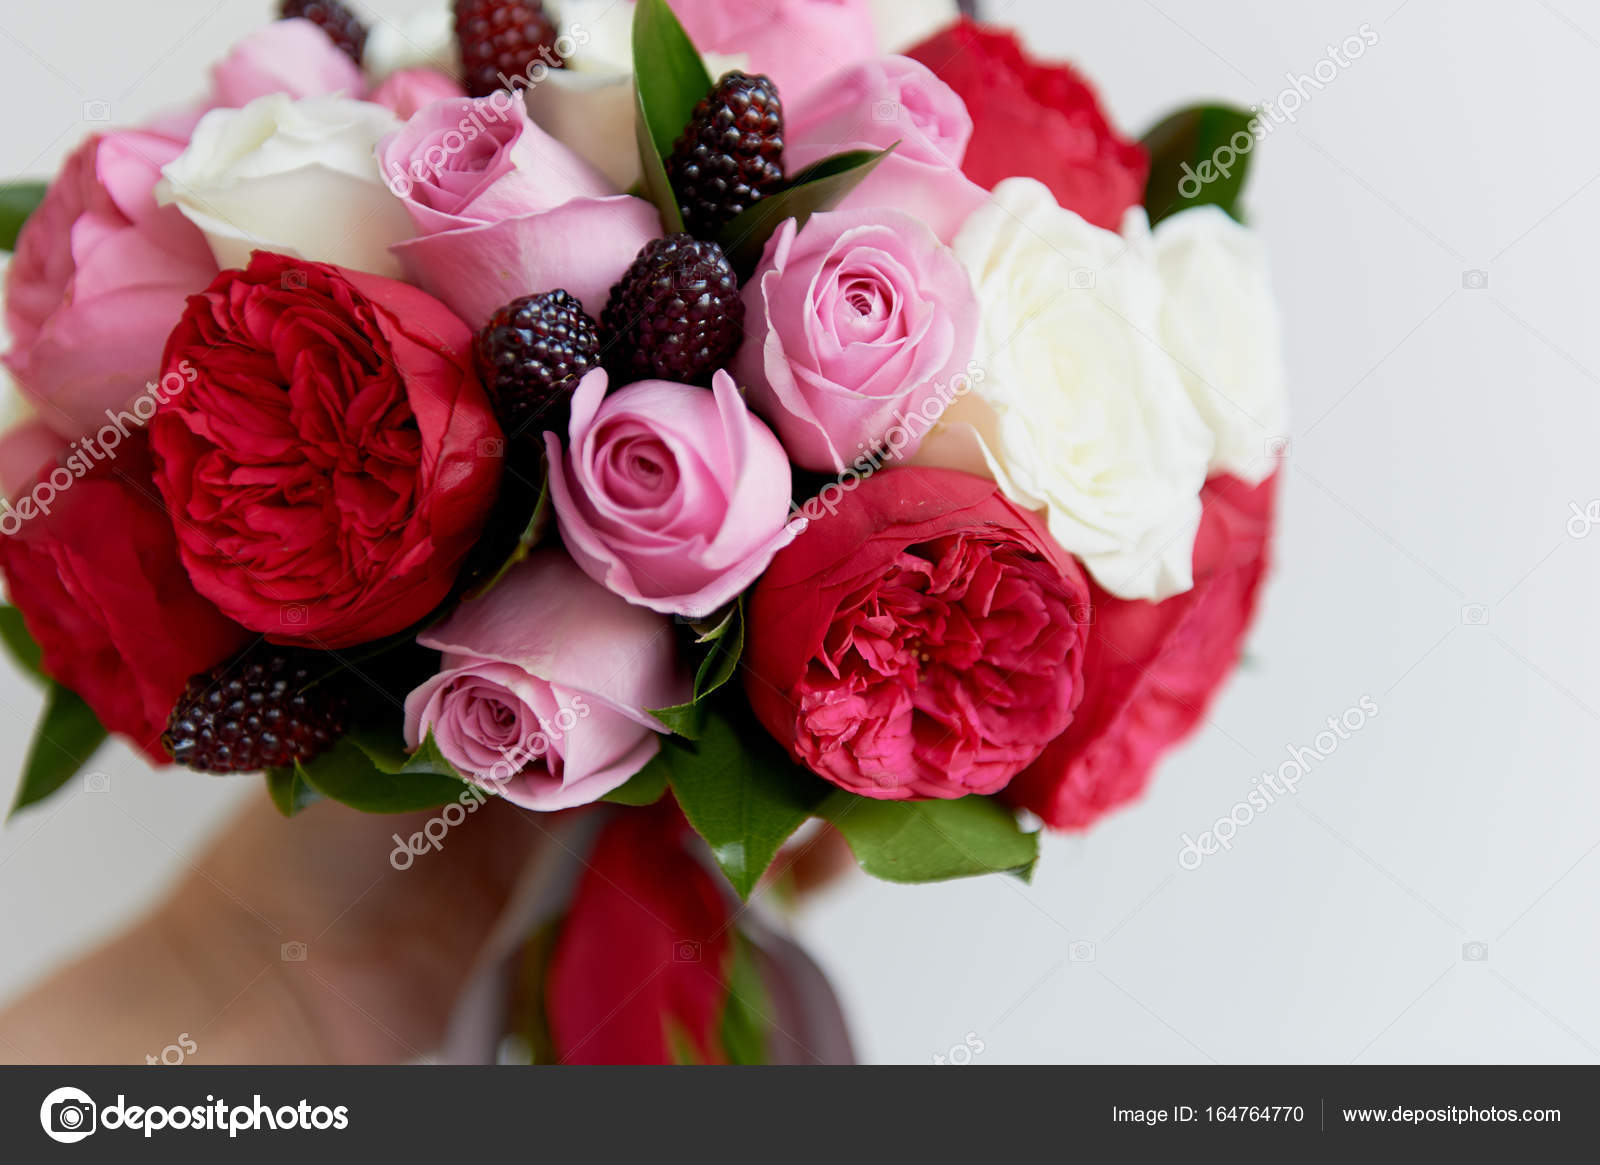 Wedding Bridal Bouquet In Red Pink Whiteding Flowers Wedding